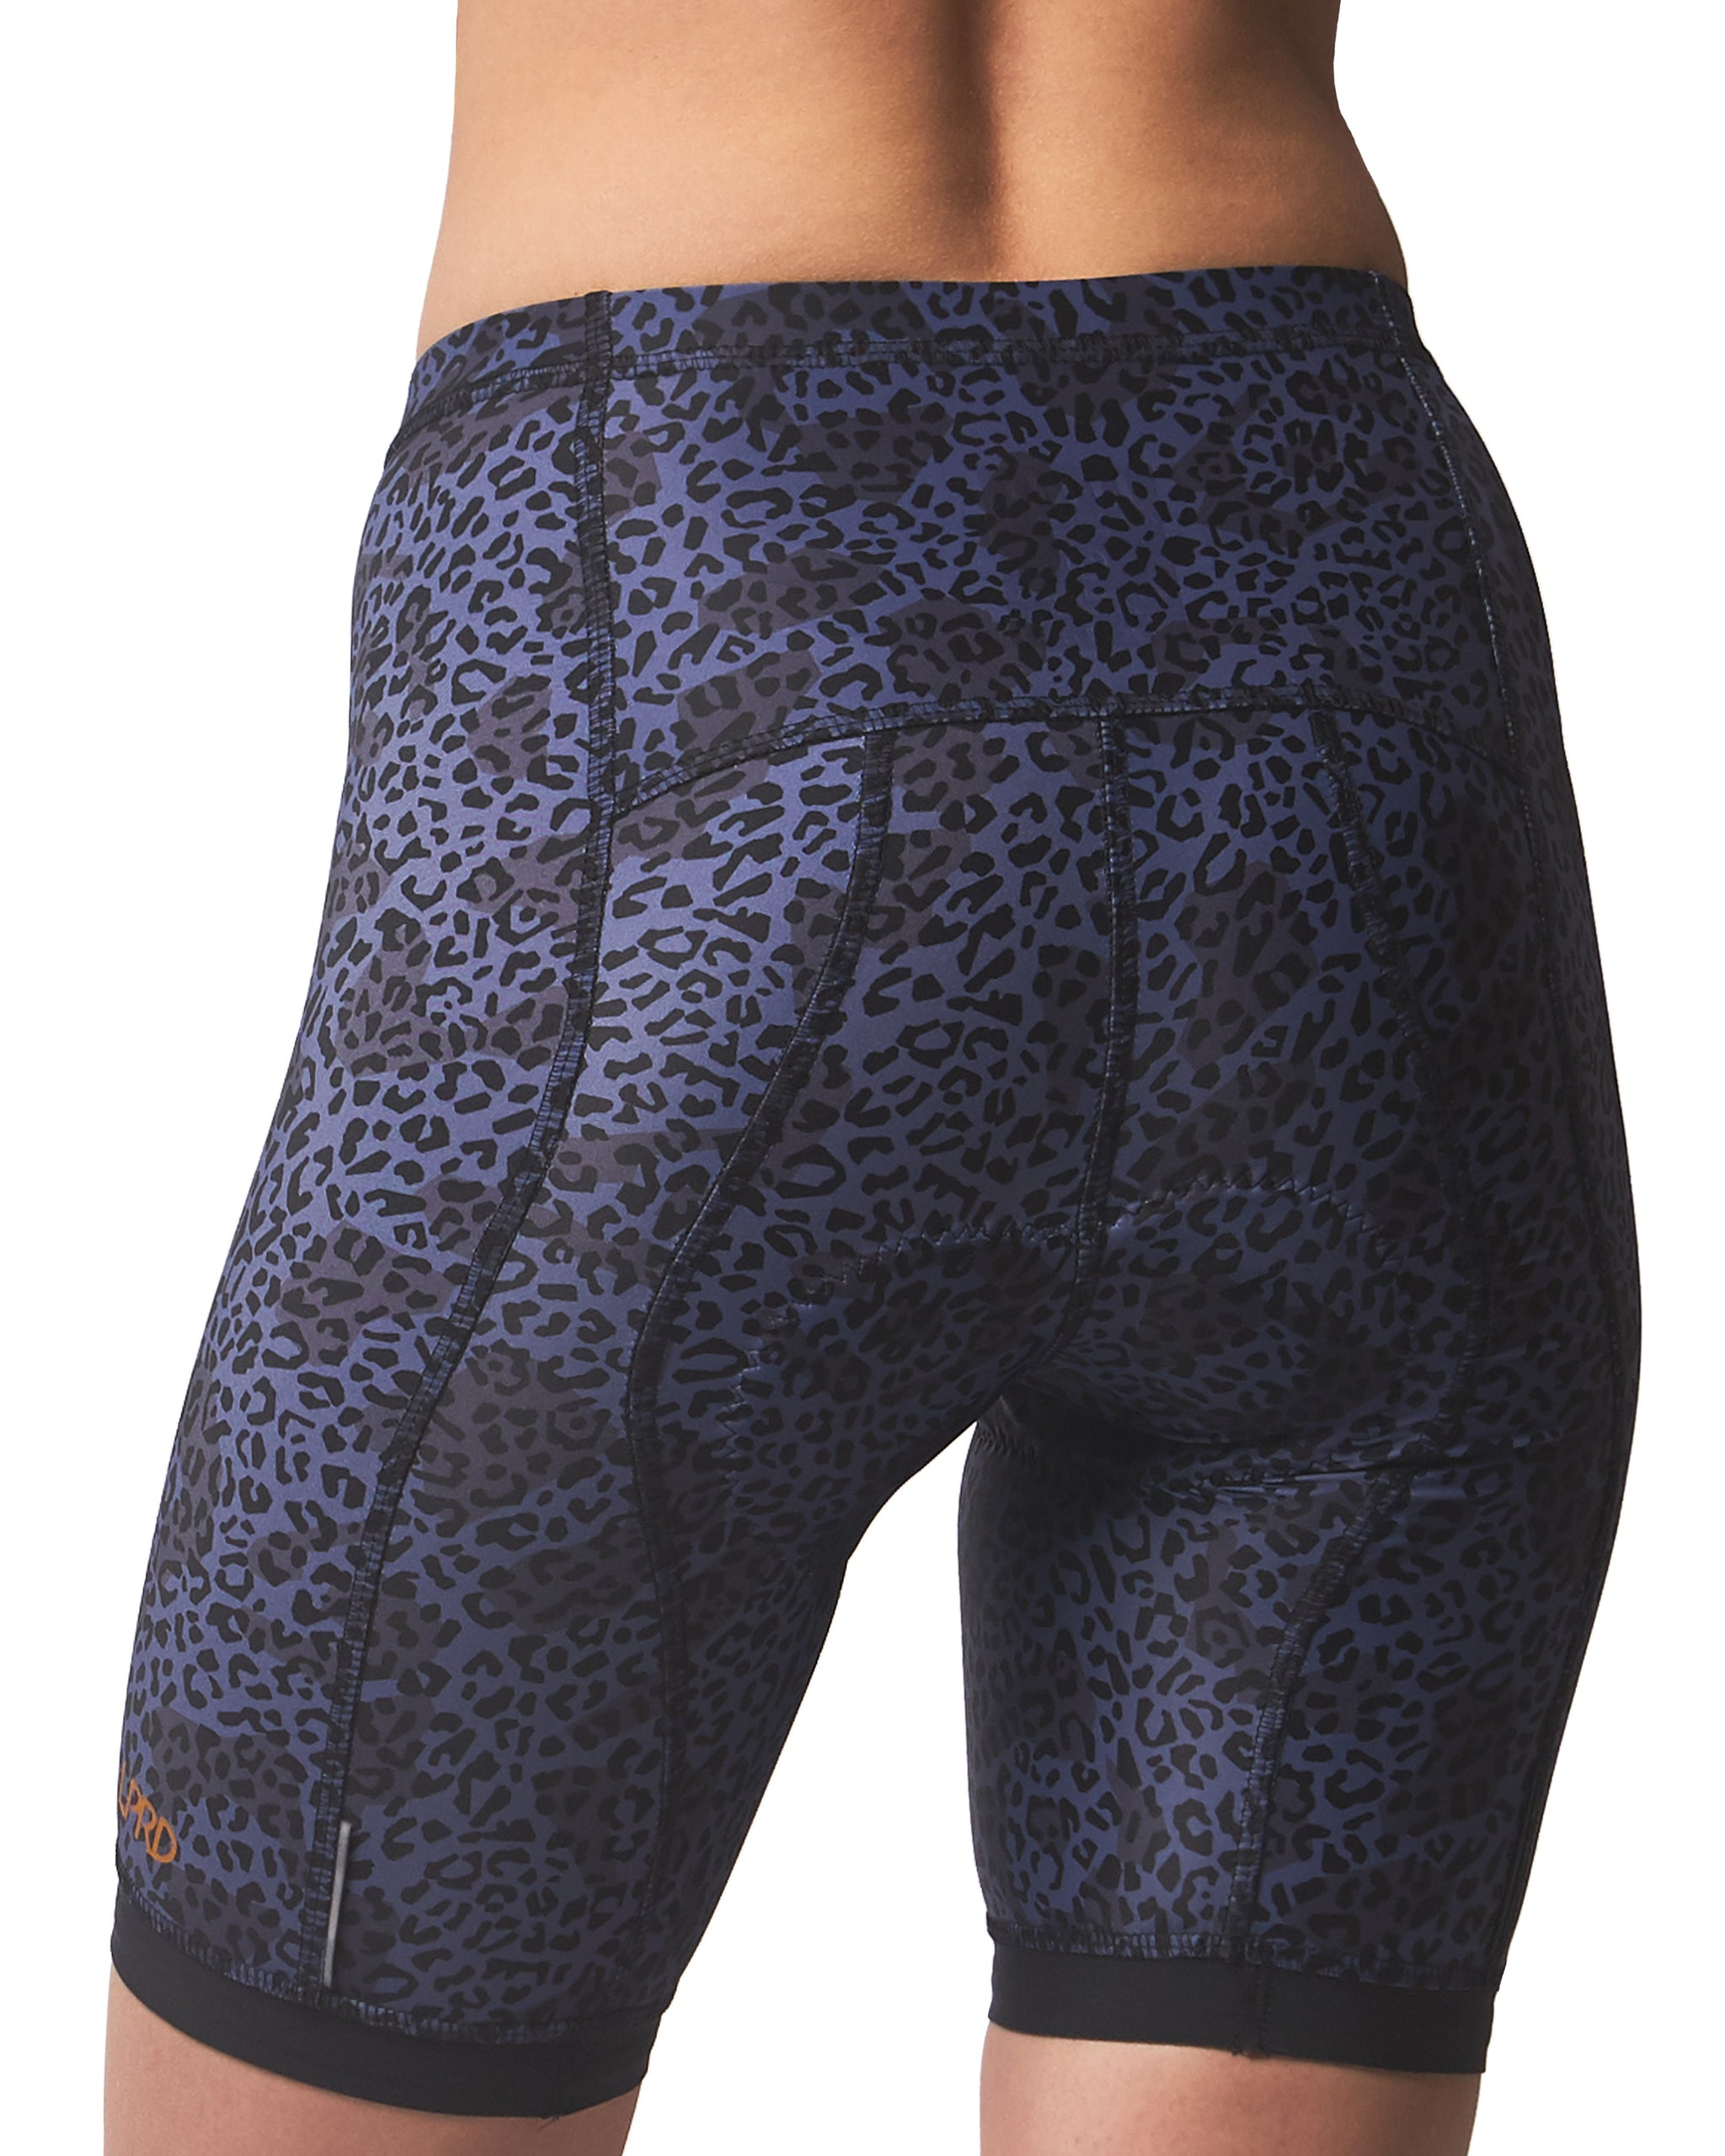 LPRD Midnight Leopard Cycling Shorts | Back View Close